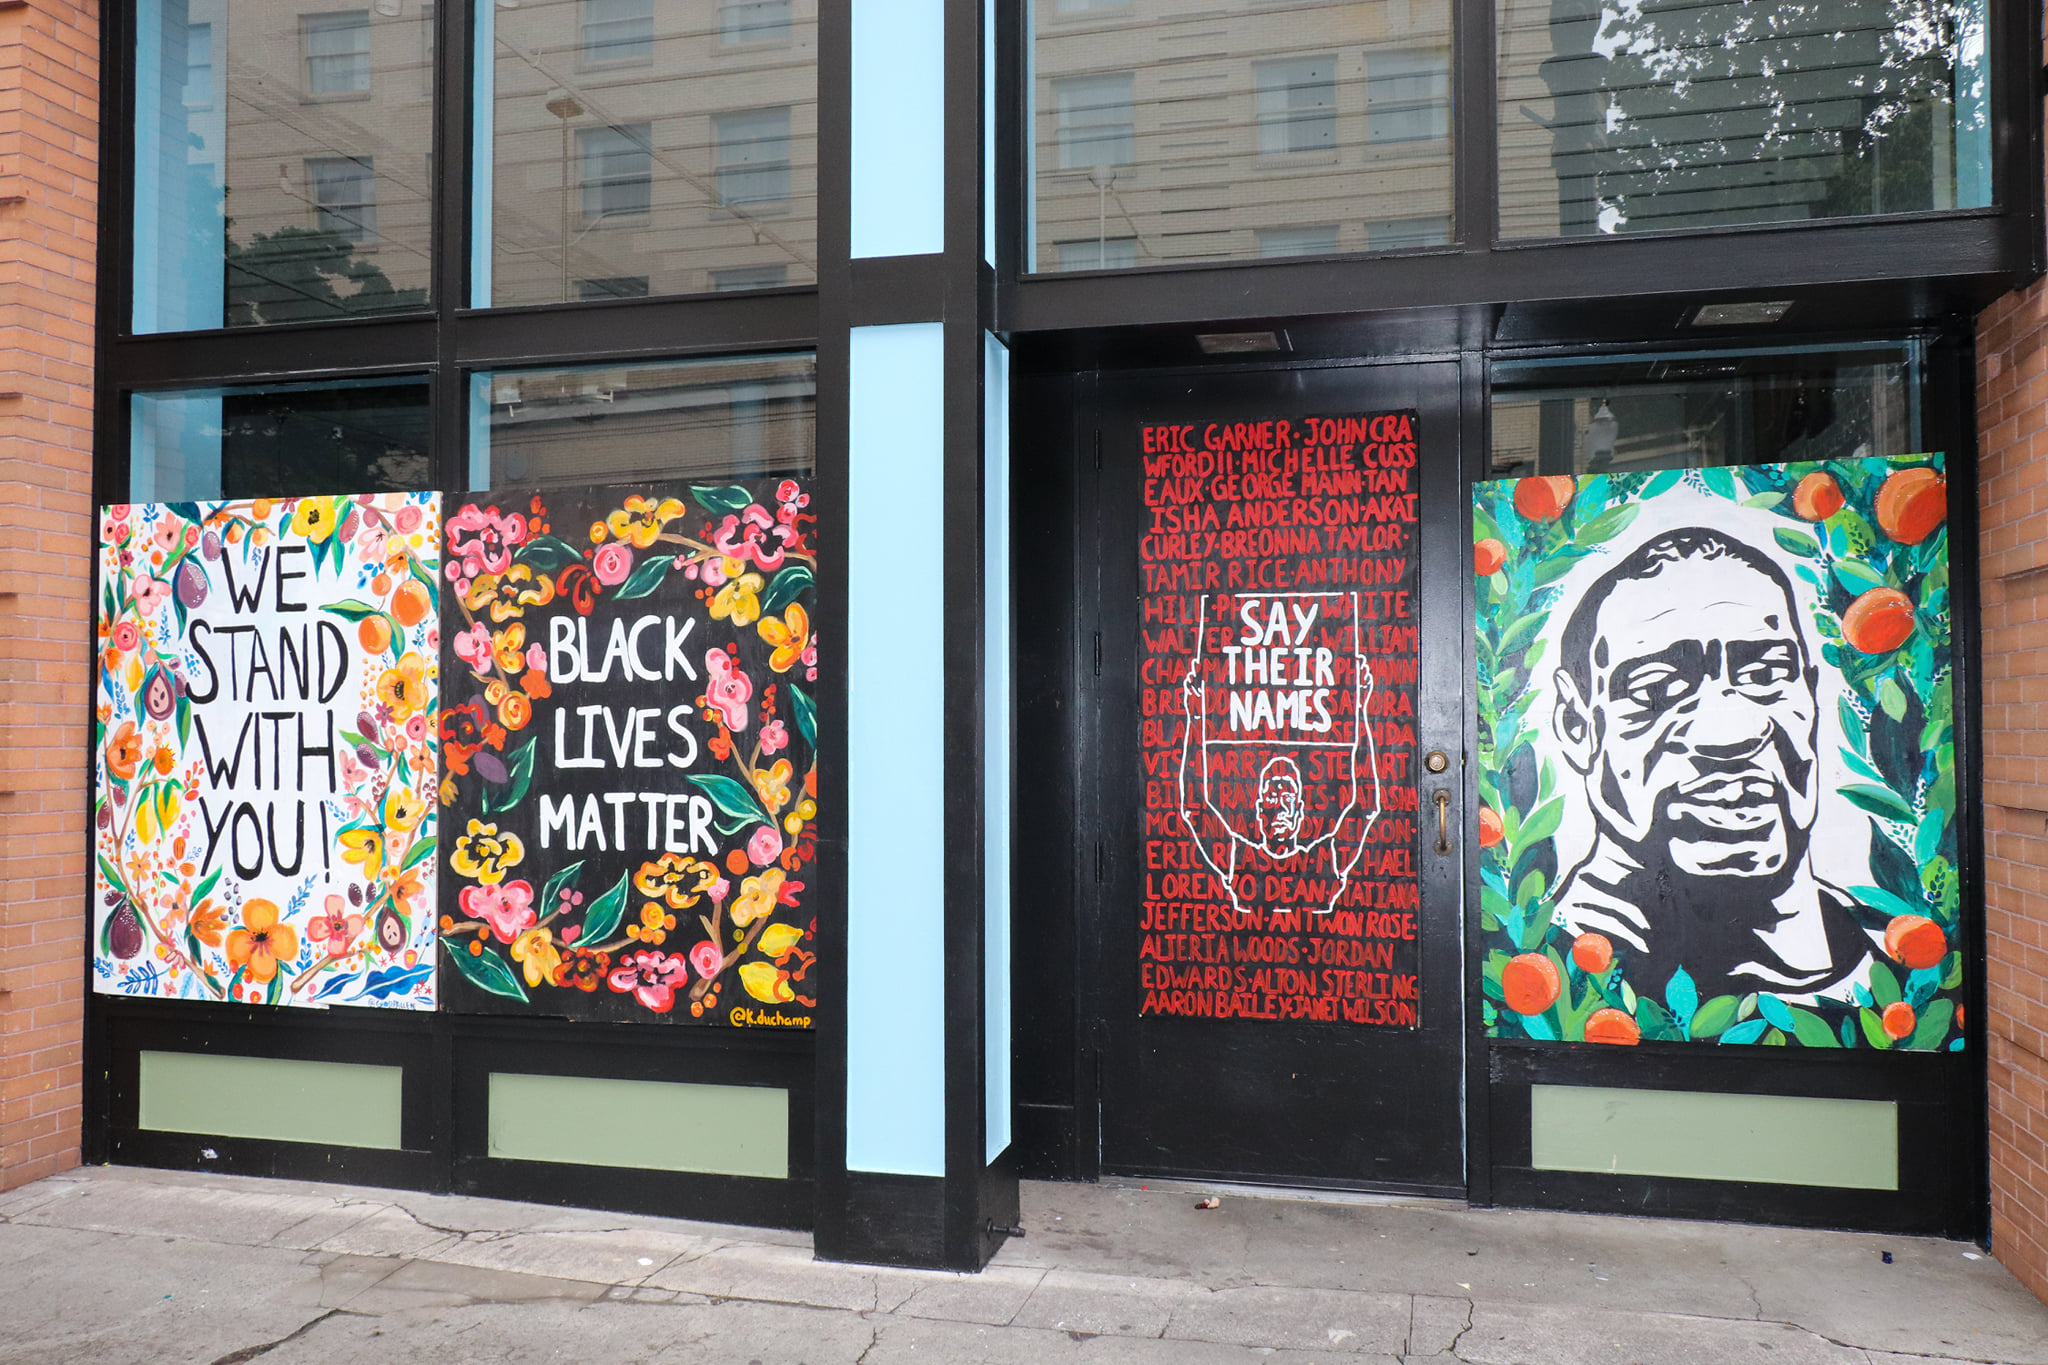 Black Lives Matter public art in Portland, Photo by Scully Media